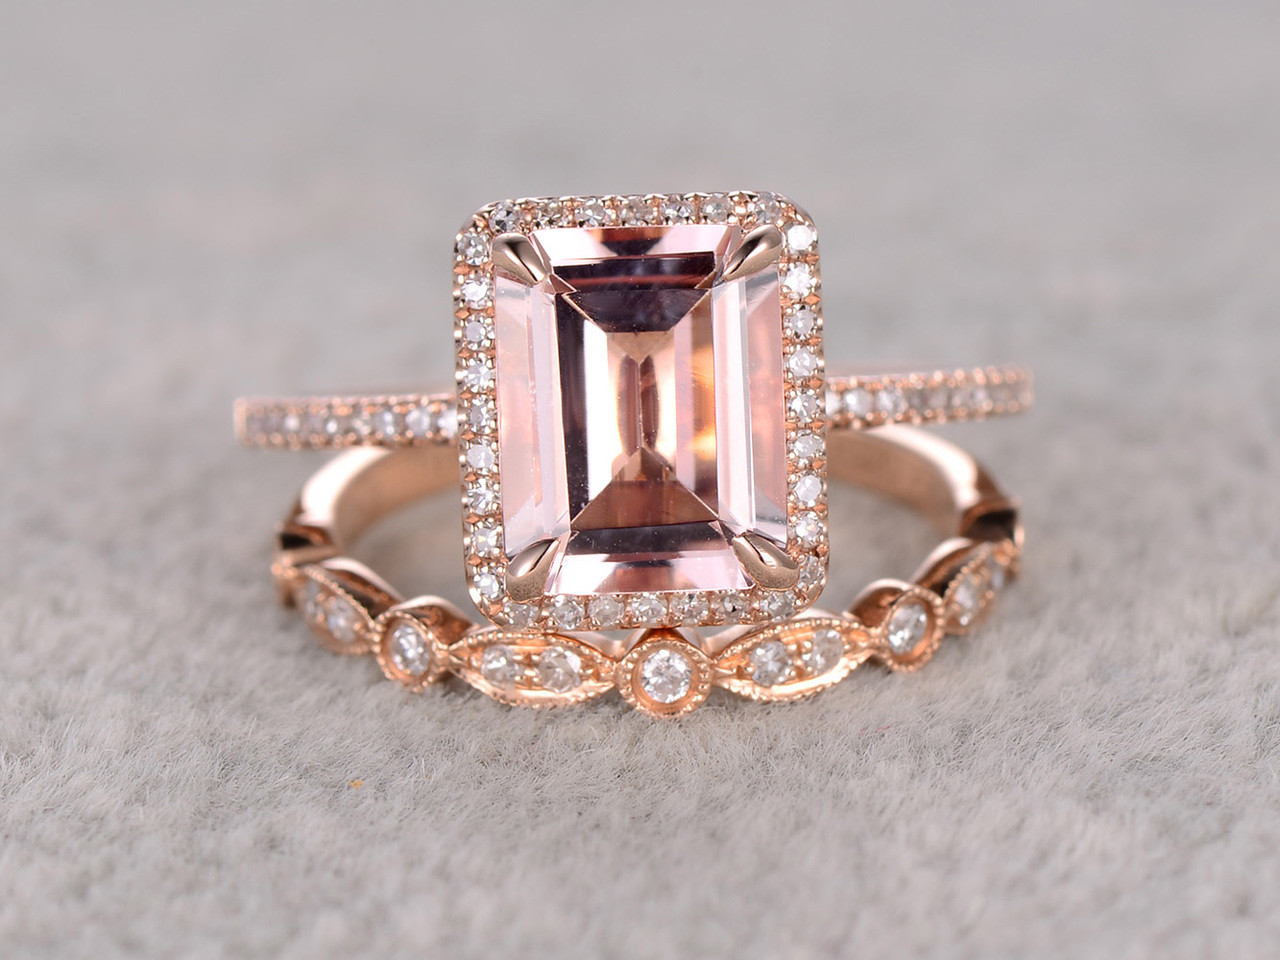 25 To 3 Carat Emerald Cut Morganite Engagement Ring Set Diamond Bridal Ring  14k Rose Gold